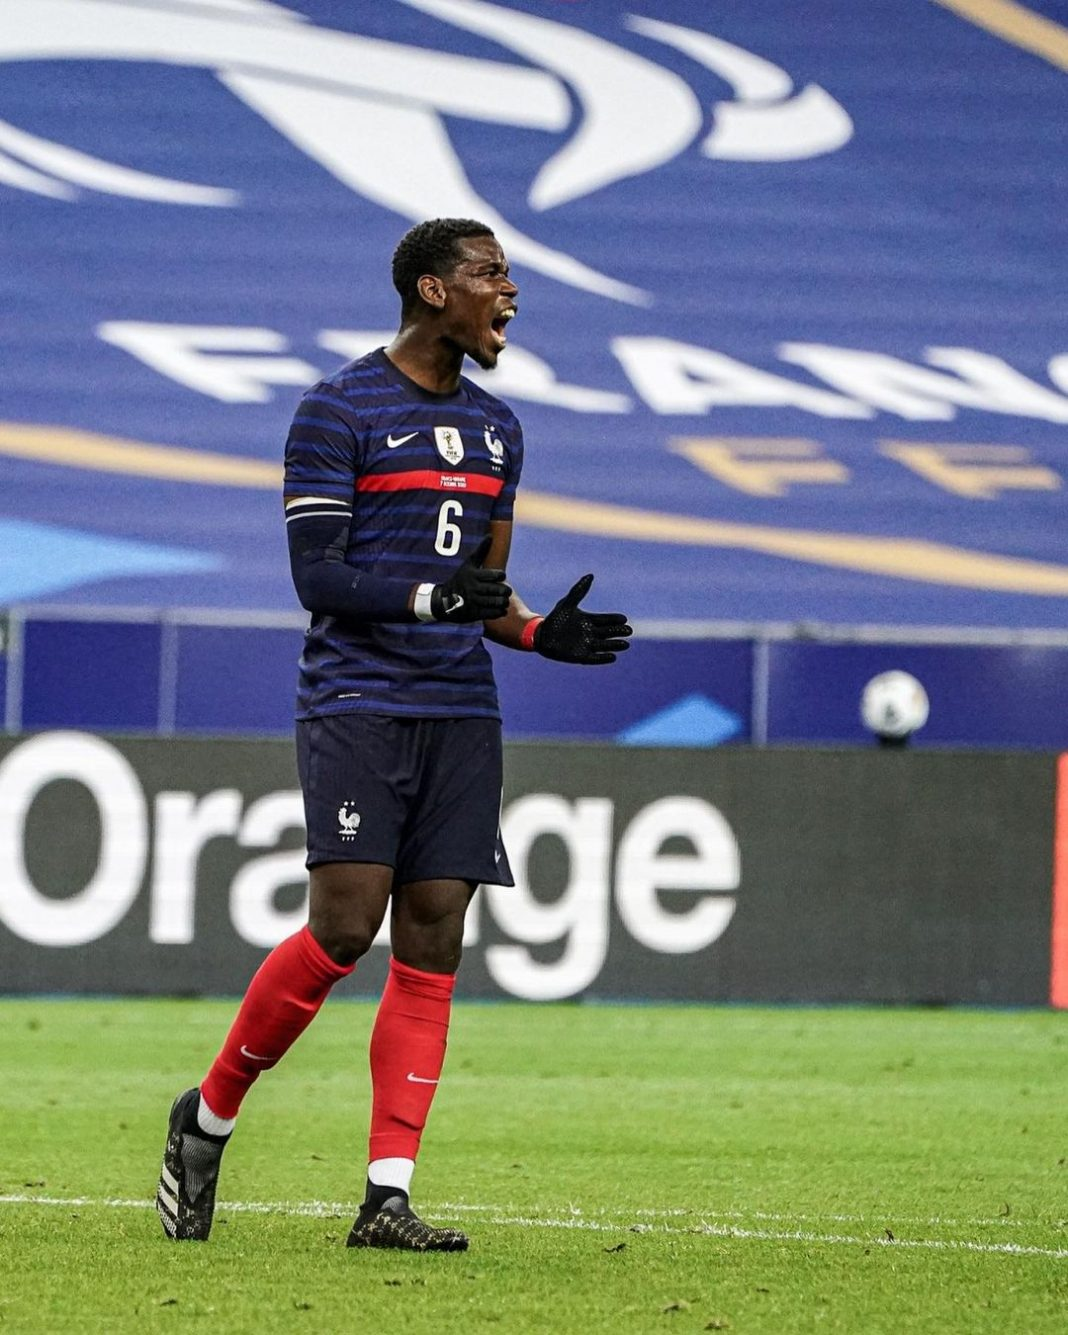 Pogba slams 'media' sources claiming he quit France National Team